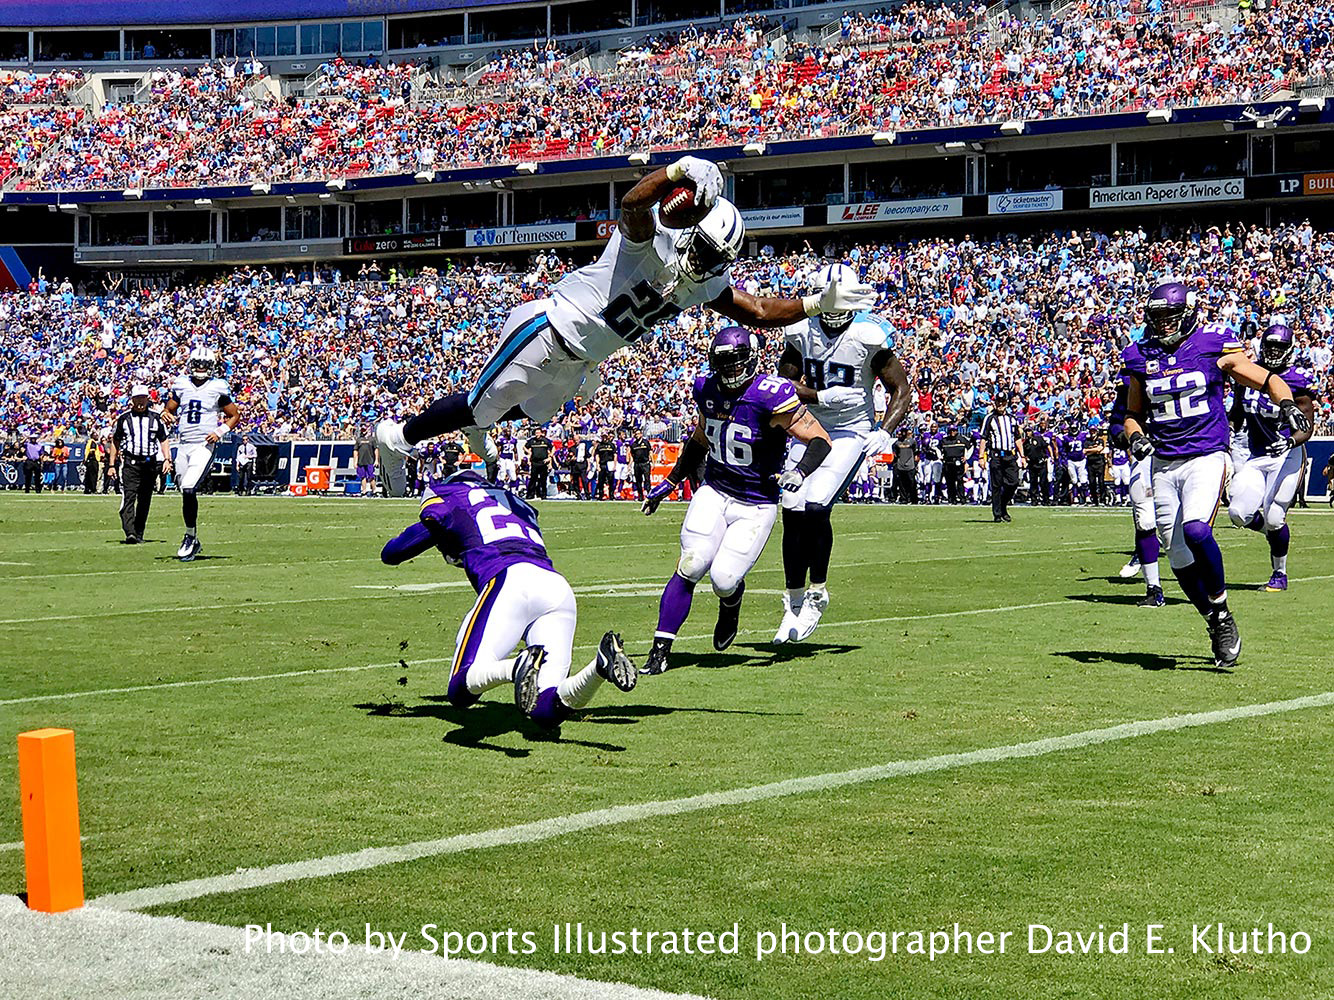 Tennessee-Titans-Minnesota-Vikings-game. Photo by Sports Illustrated photographer David E. Klutho.